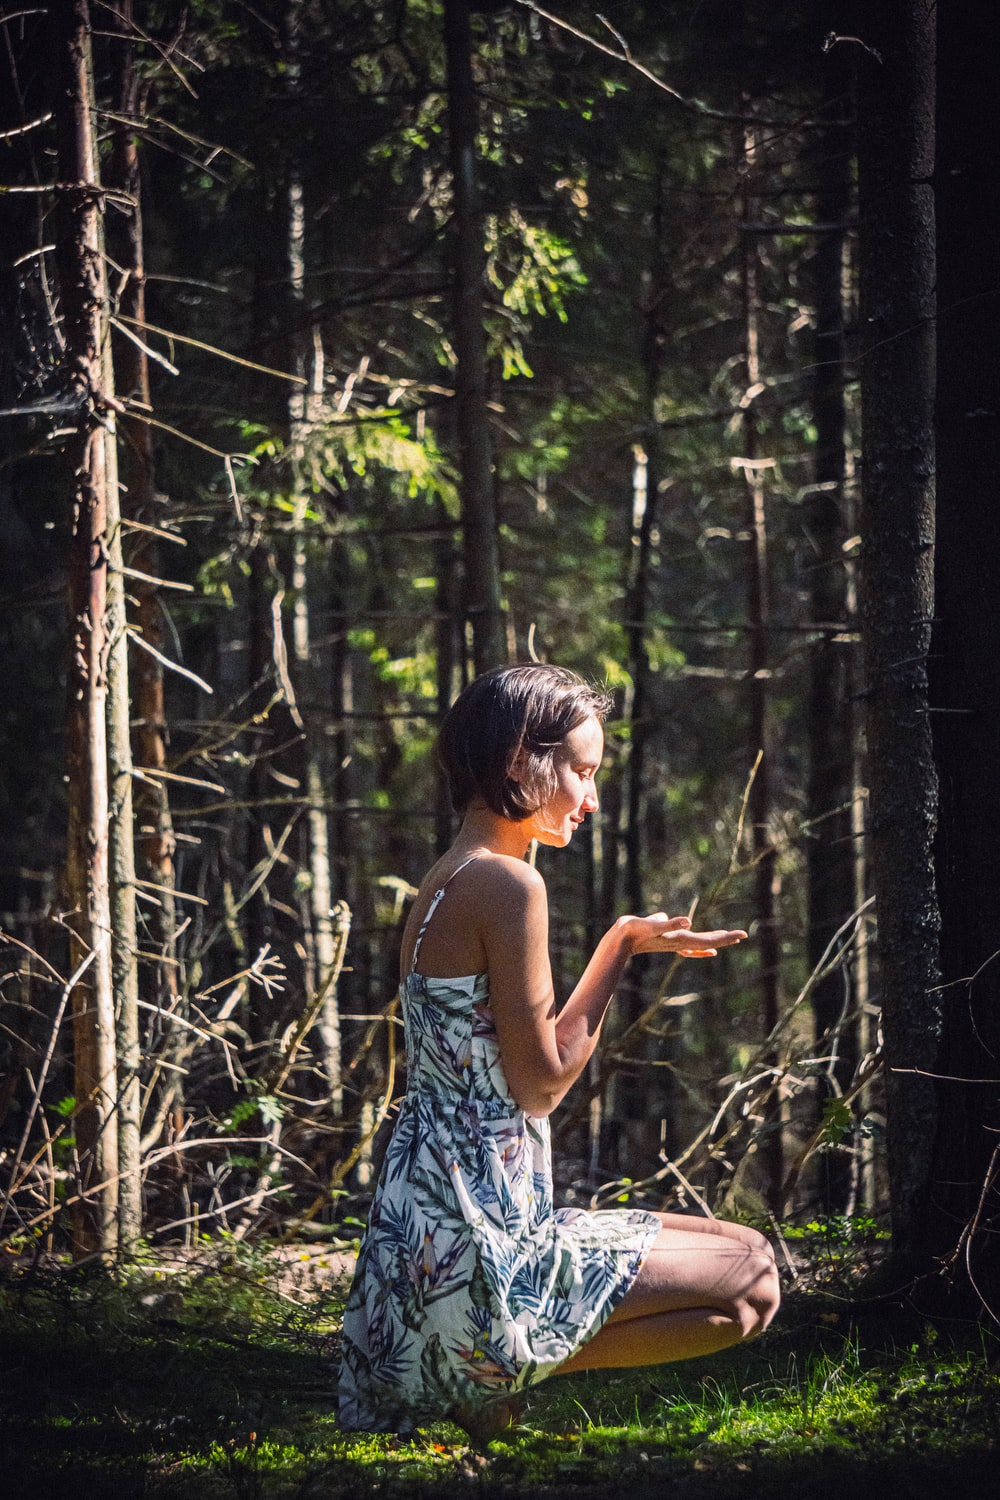 woman in blue and white floral spaghetti strap dress standing in forest during daytime